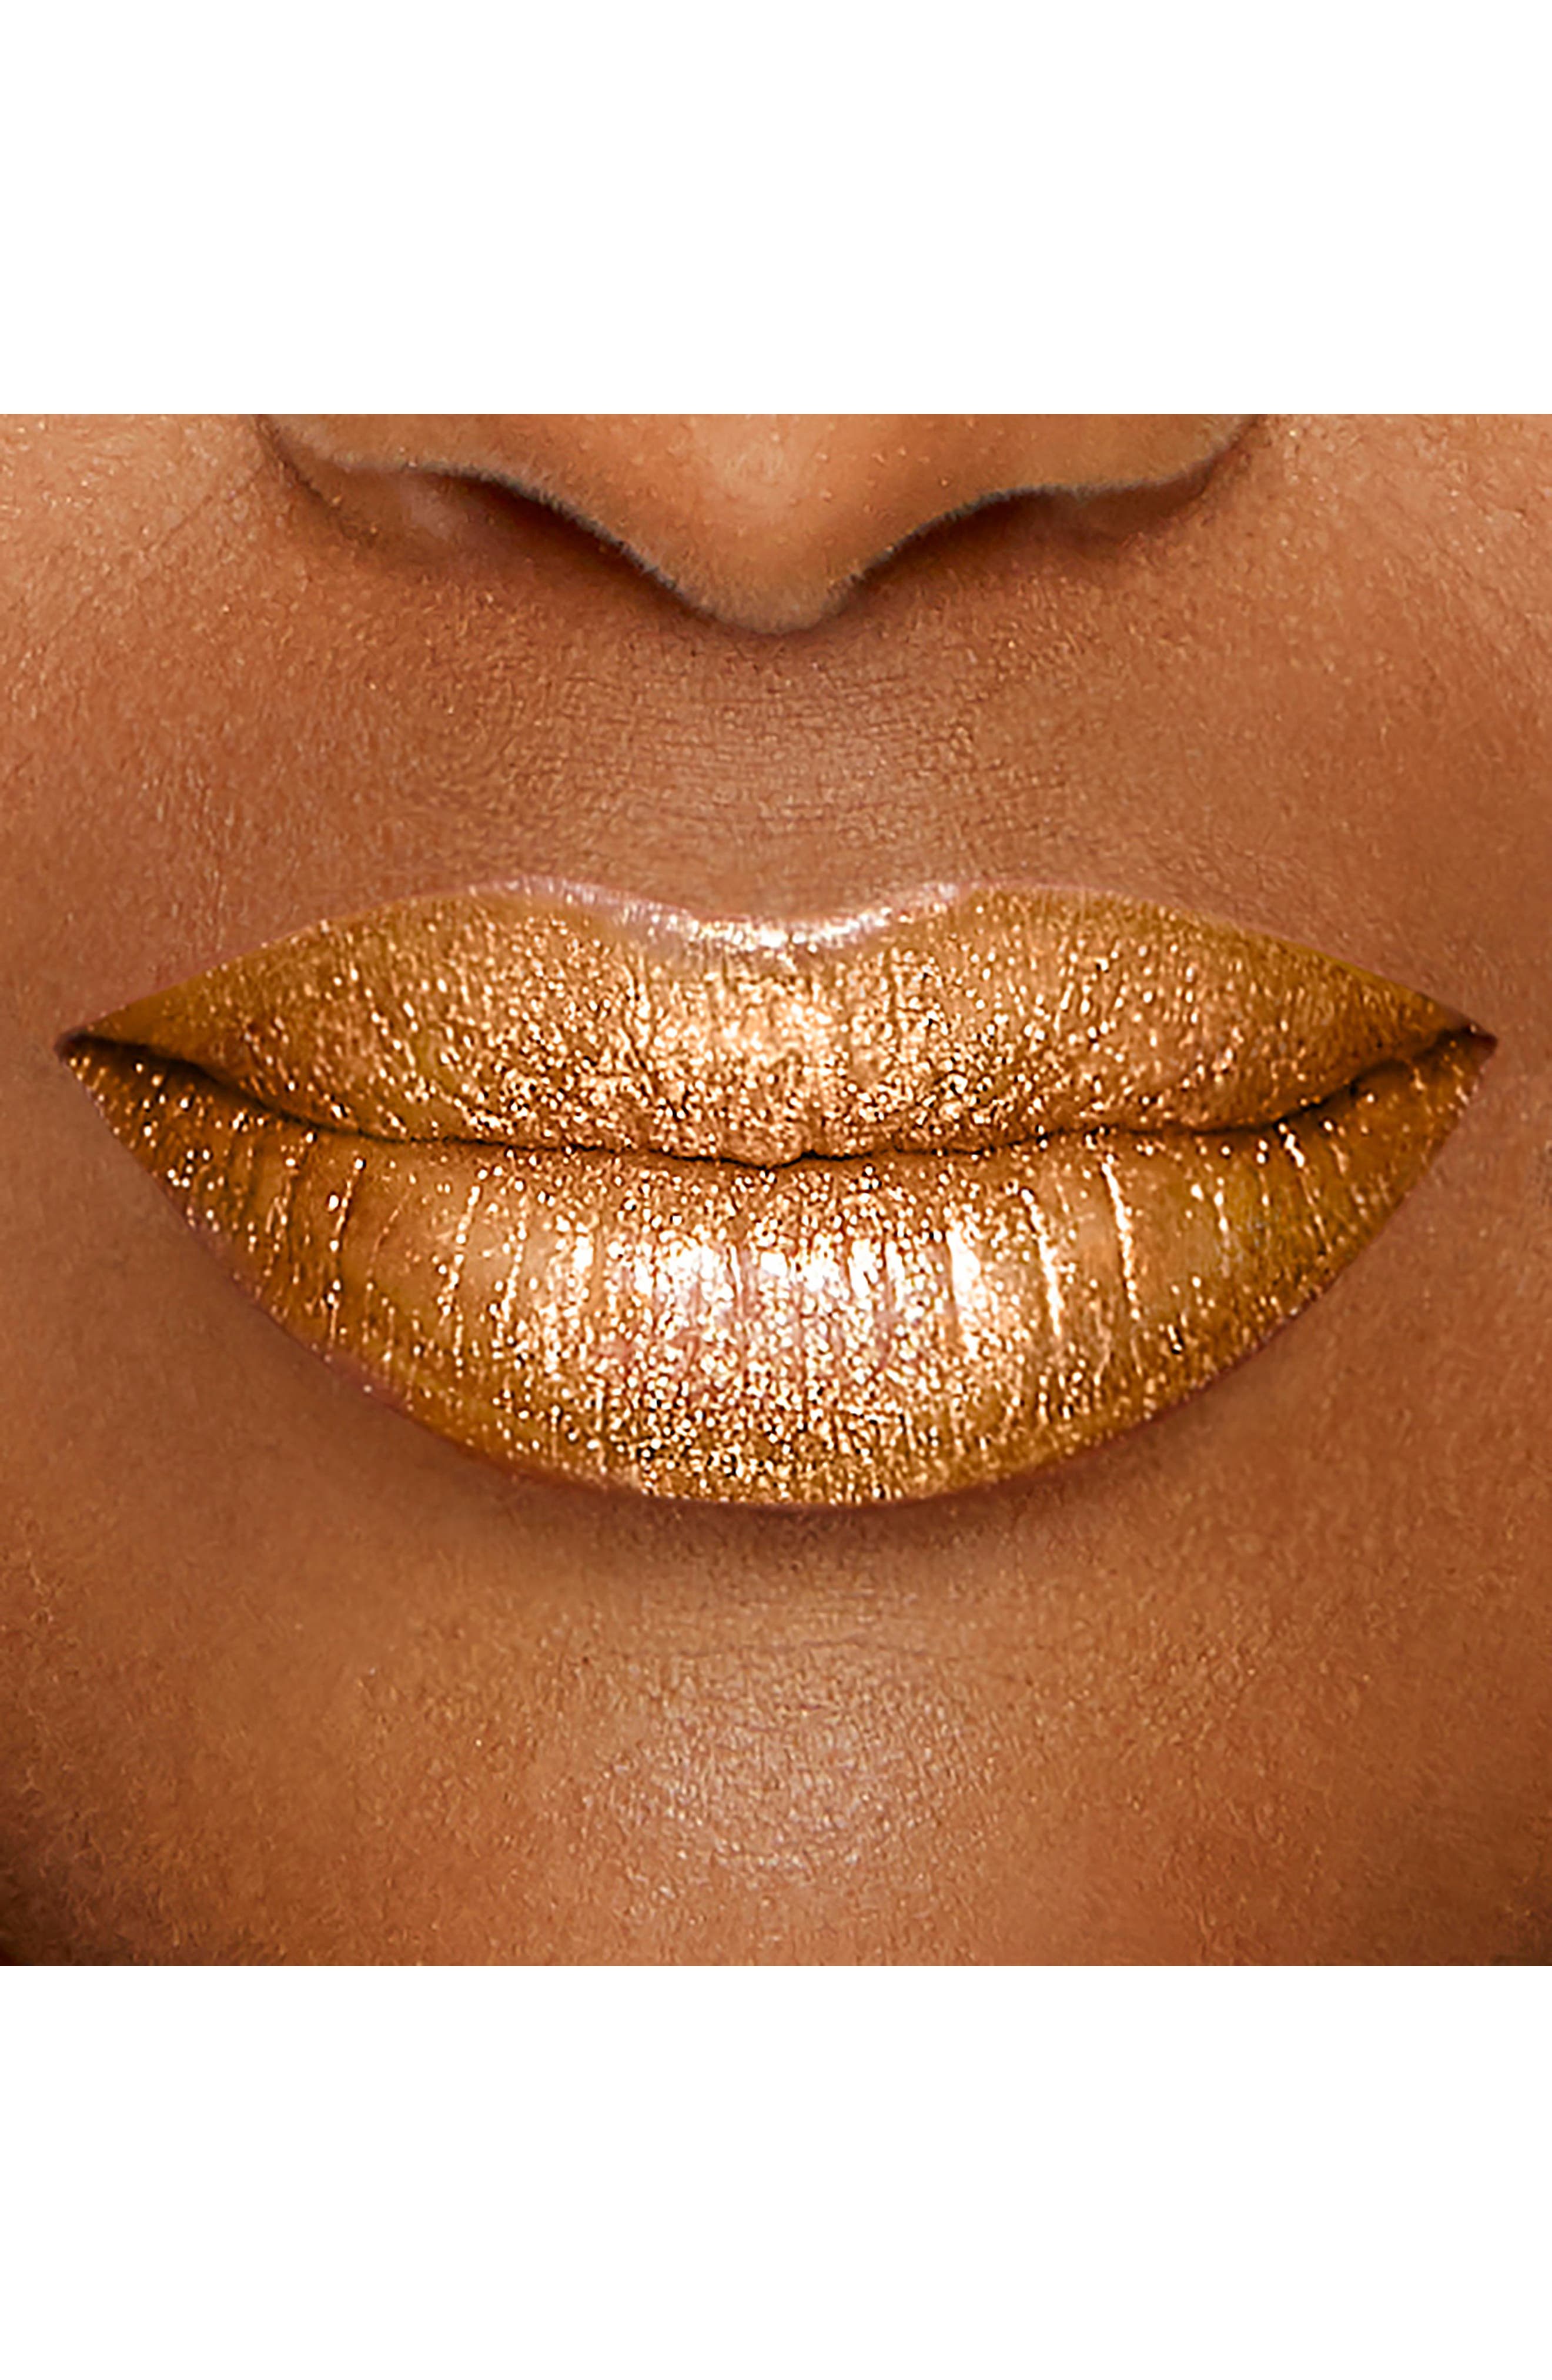 Melted Gold Liquified Gold Lip Gloss,                             Alternate thumbnail 6, color,                             GOLD